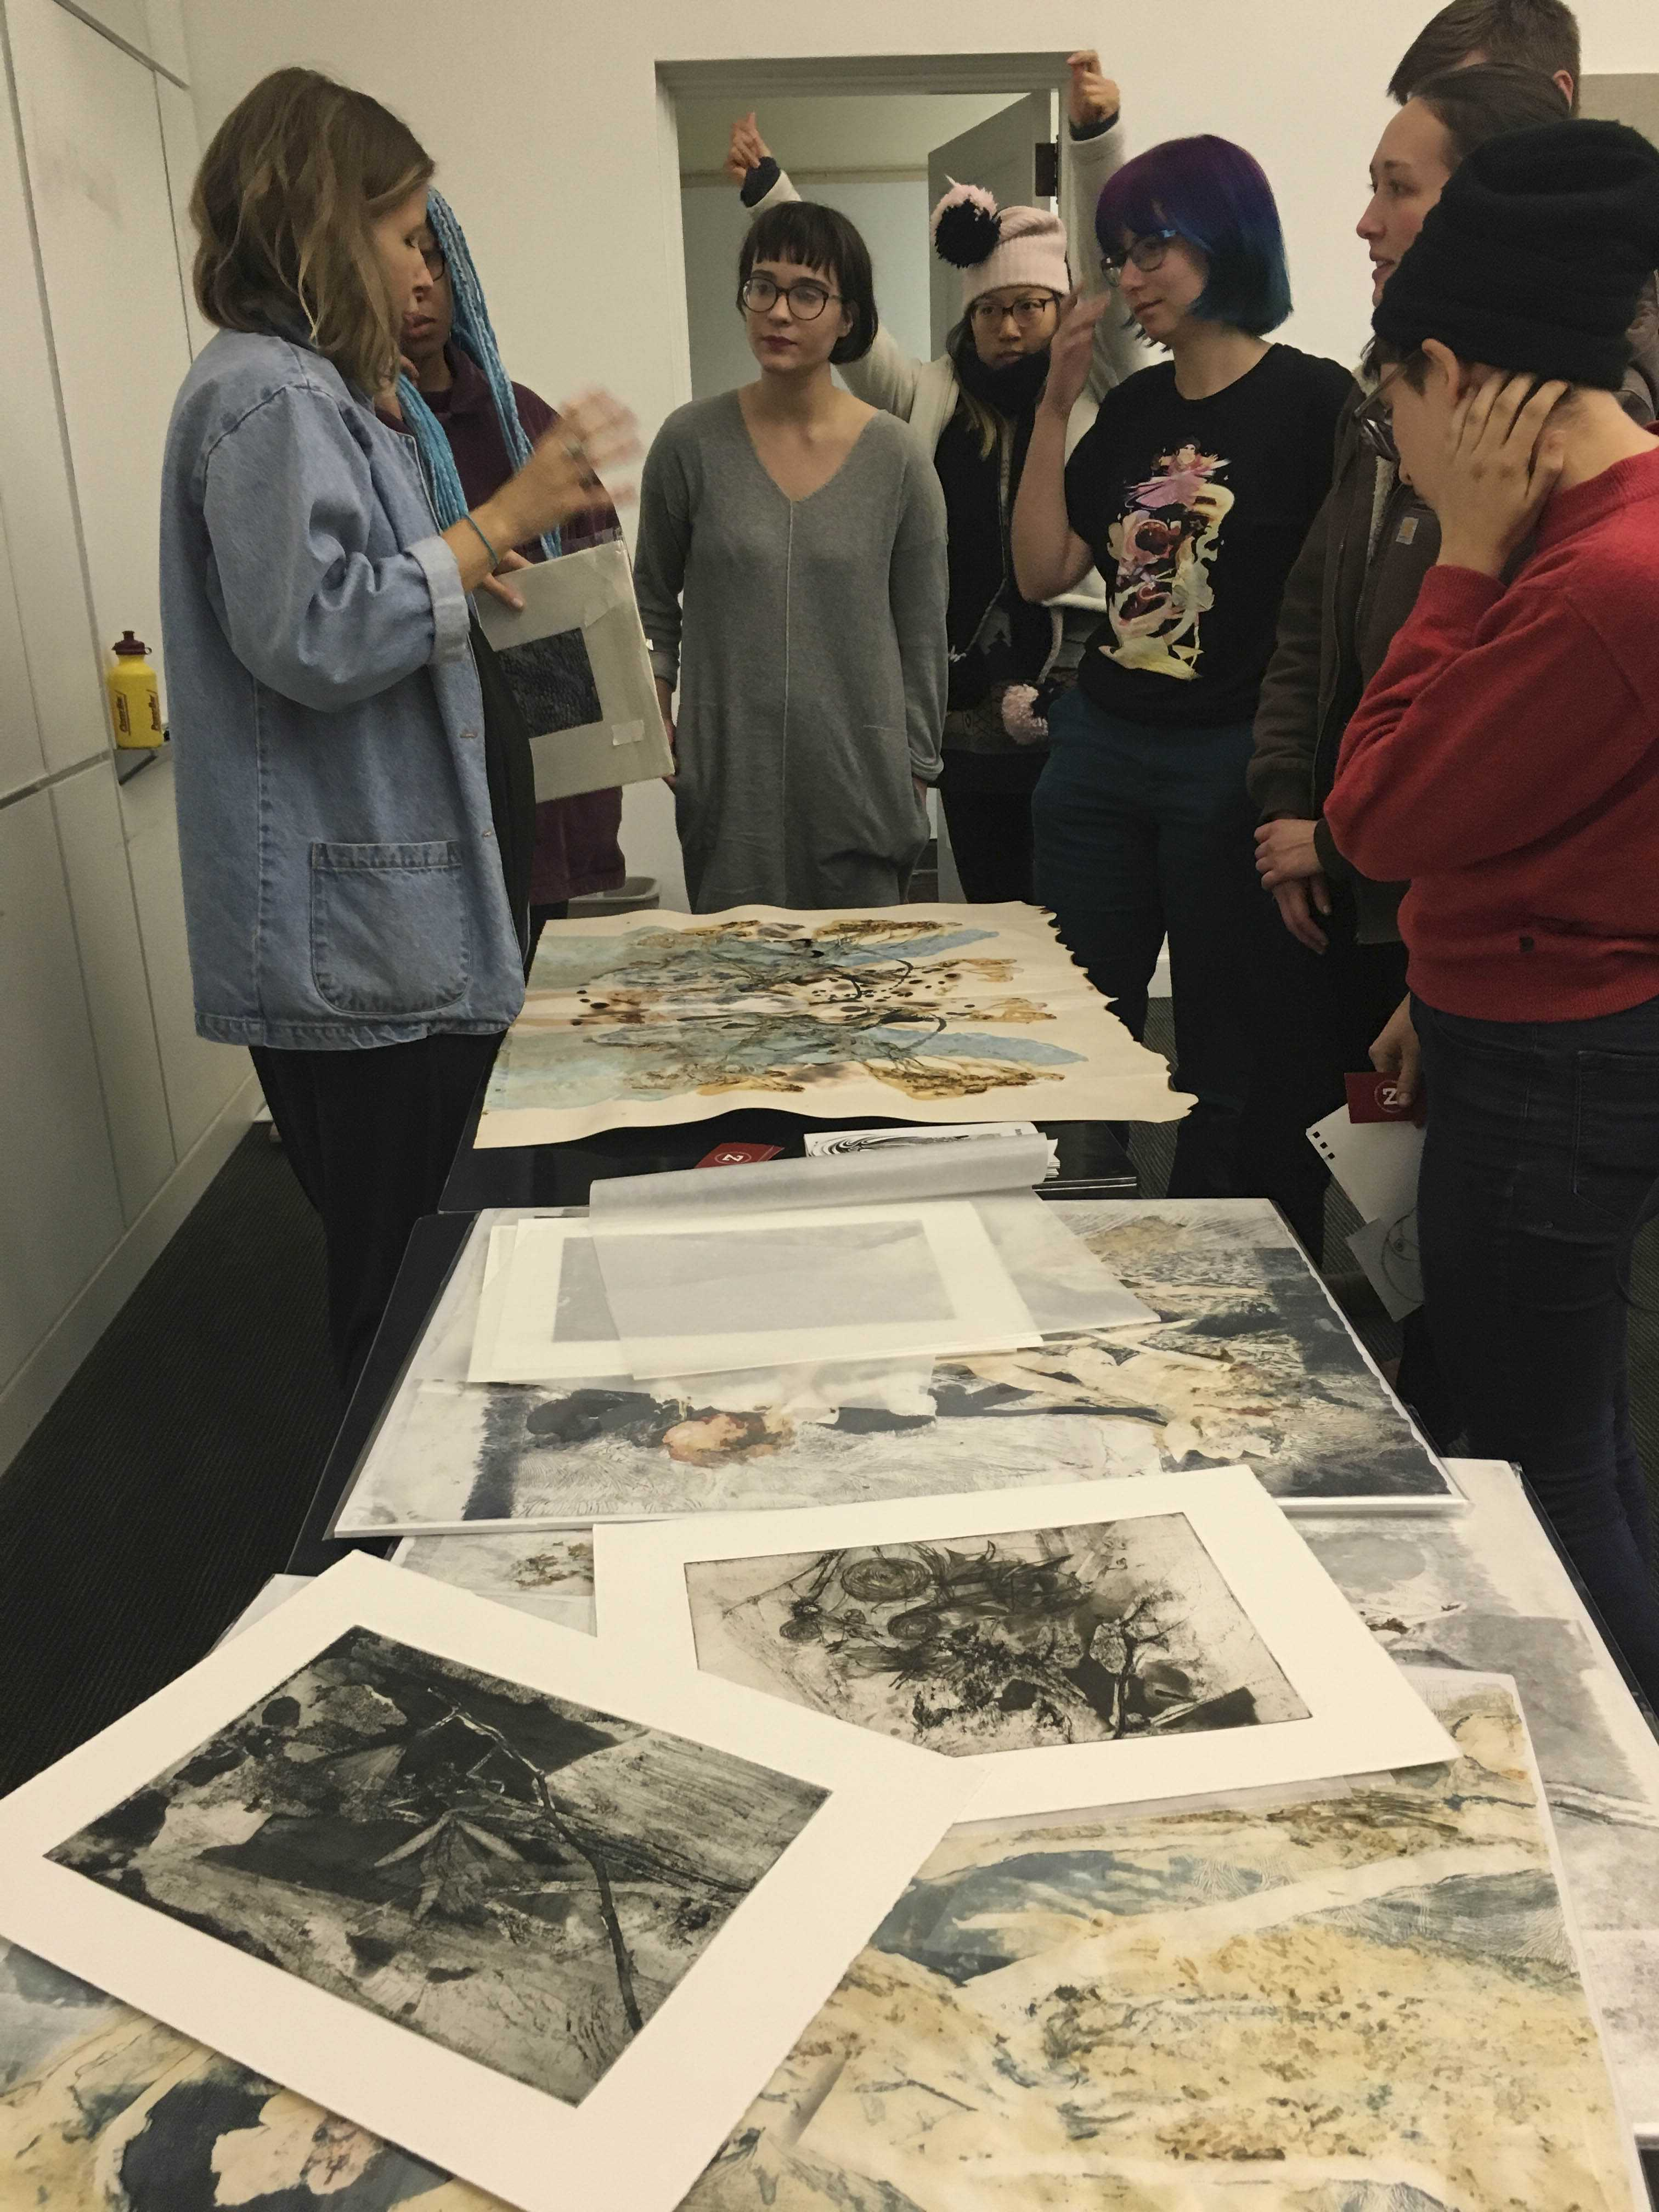 Cleveland-based studio artist Christi Birchfield visited Oberlin Wednesday to discuss her role as production manager at Zygote Press.